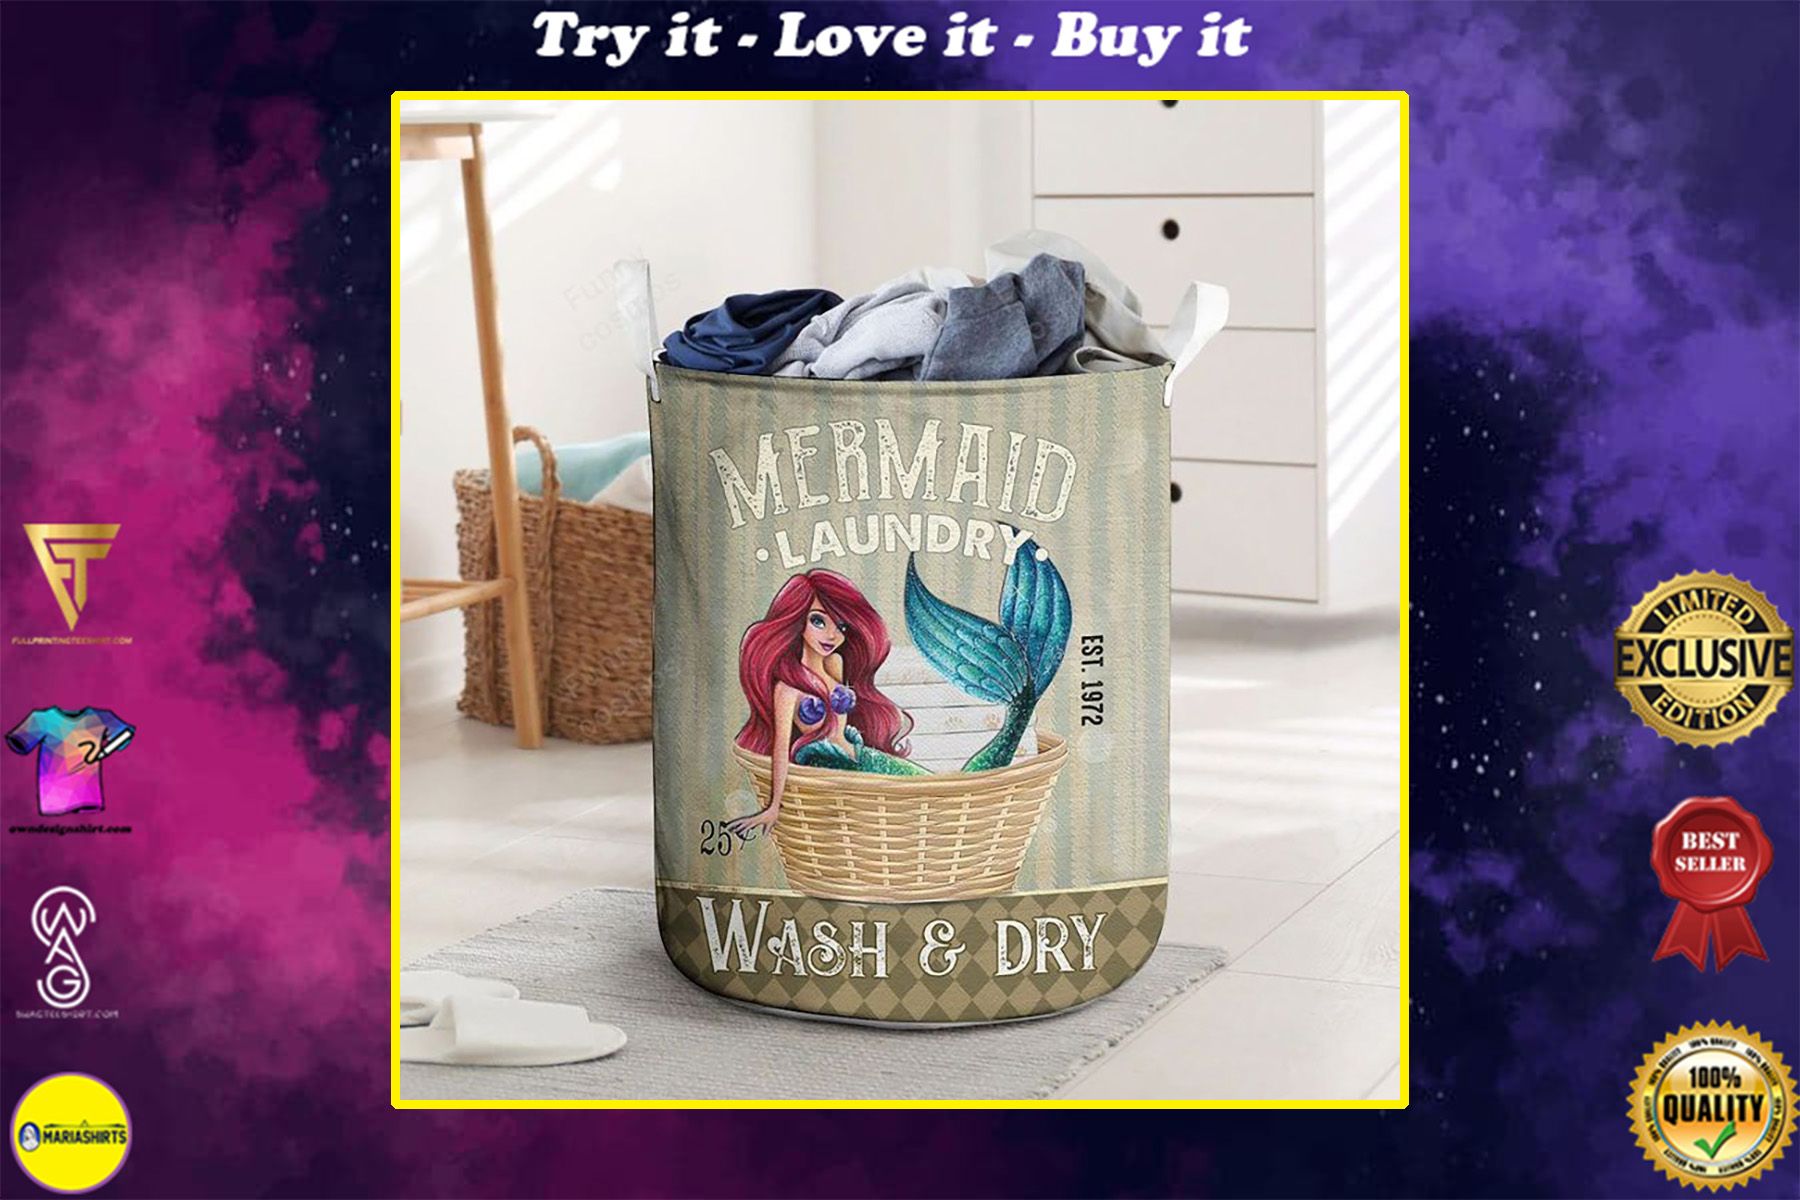 mermaid wash and dry all over printed laundry basket